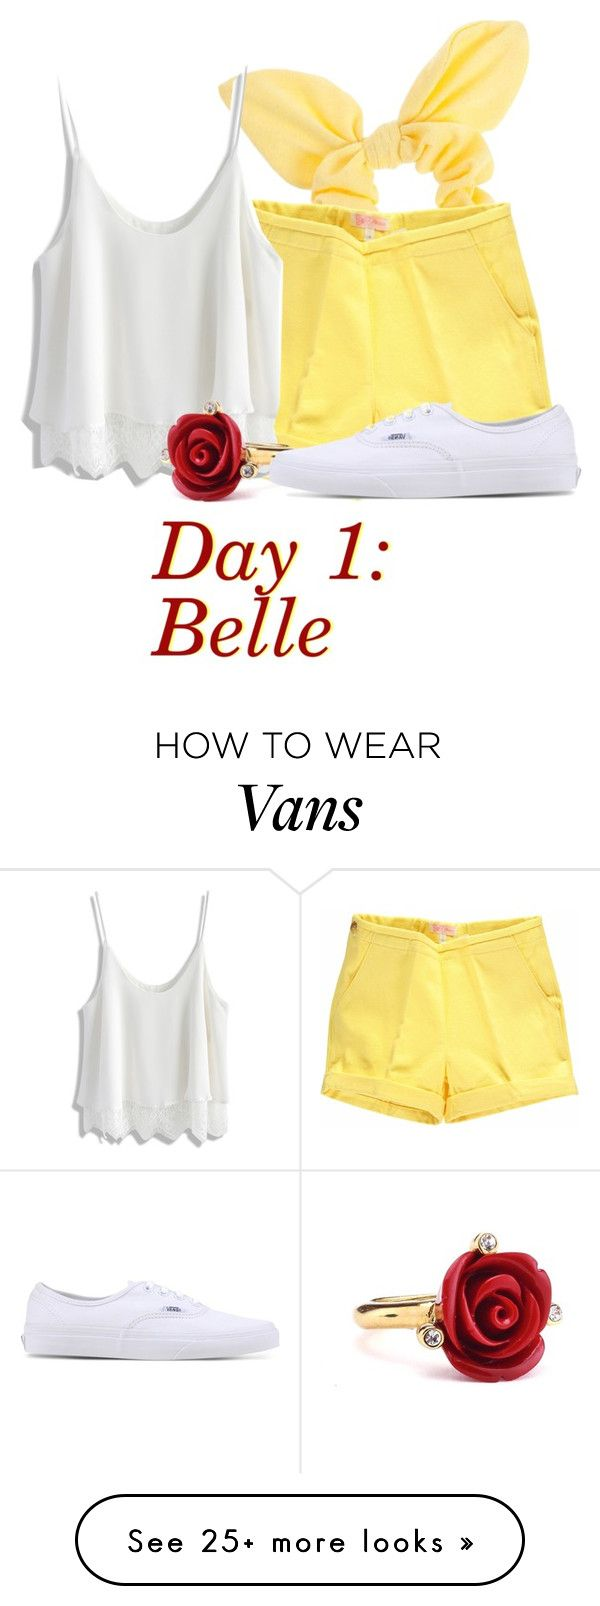 """Belle: Day 1"" by beckthemermaid on Polyvore featuring Dorothy Perkins, Chicwish, Oscar de la Renta and Vans"